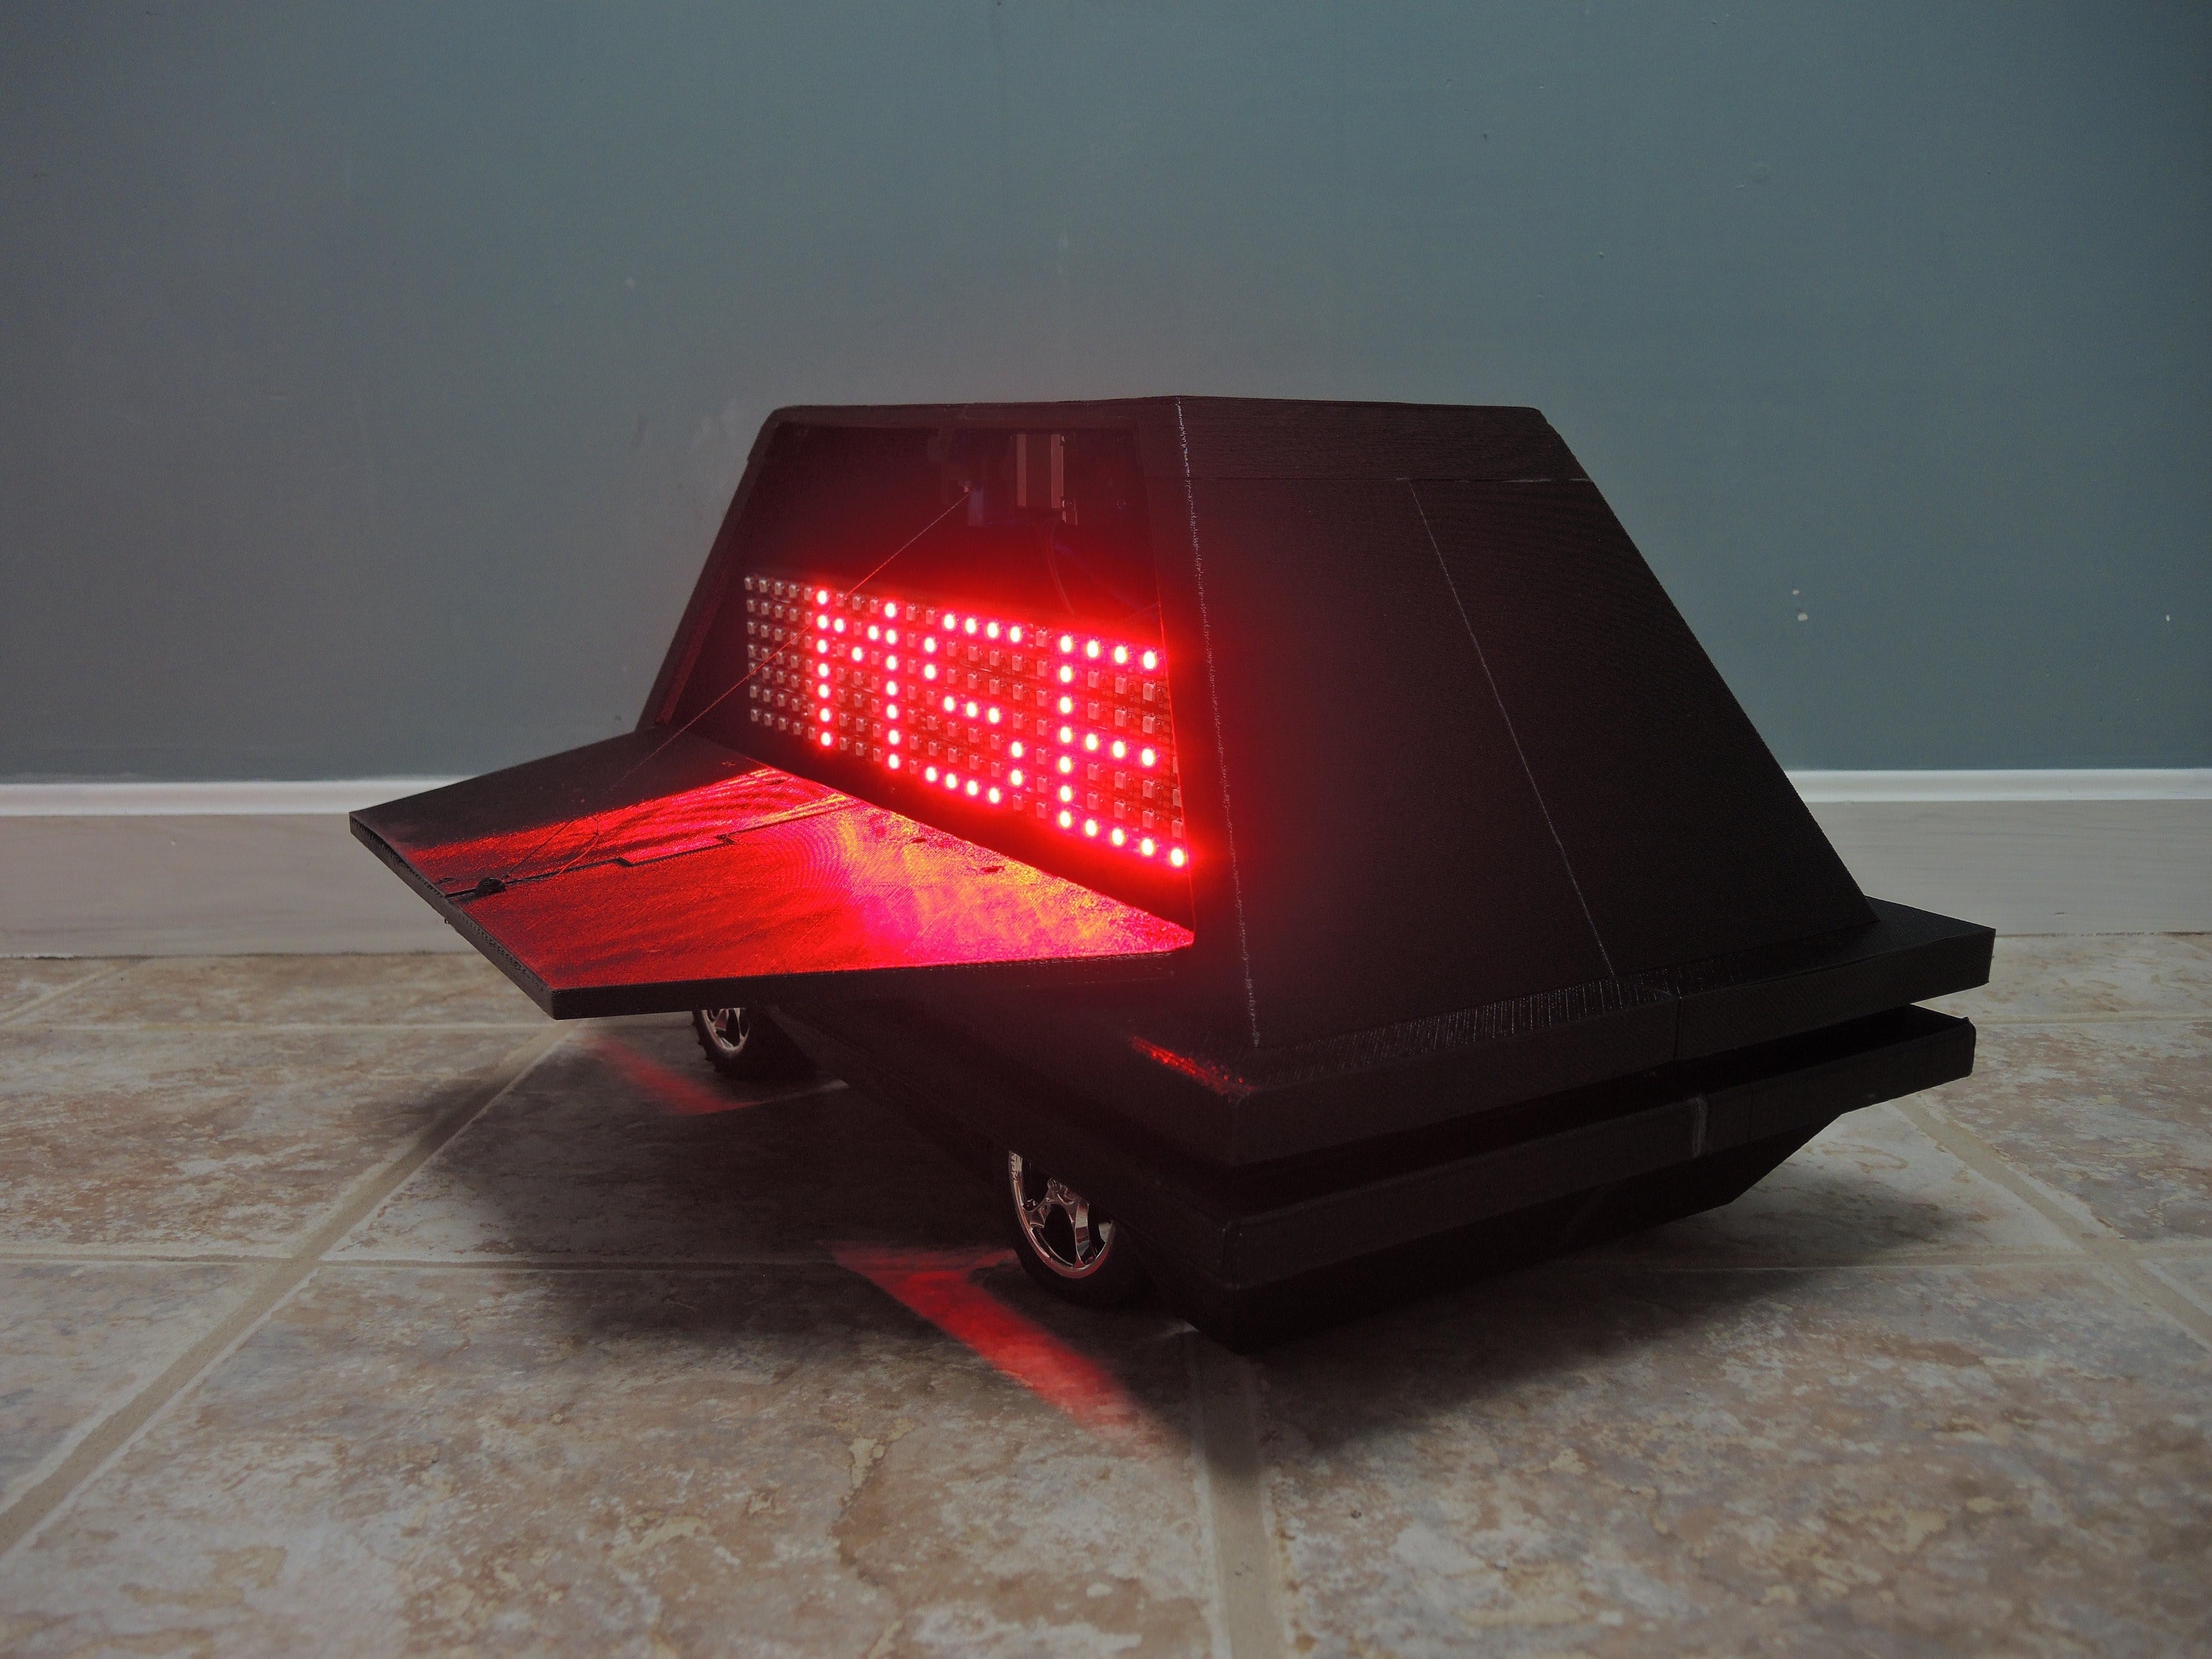 Star Wars Mouse Droid with Hidden Payload